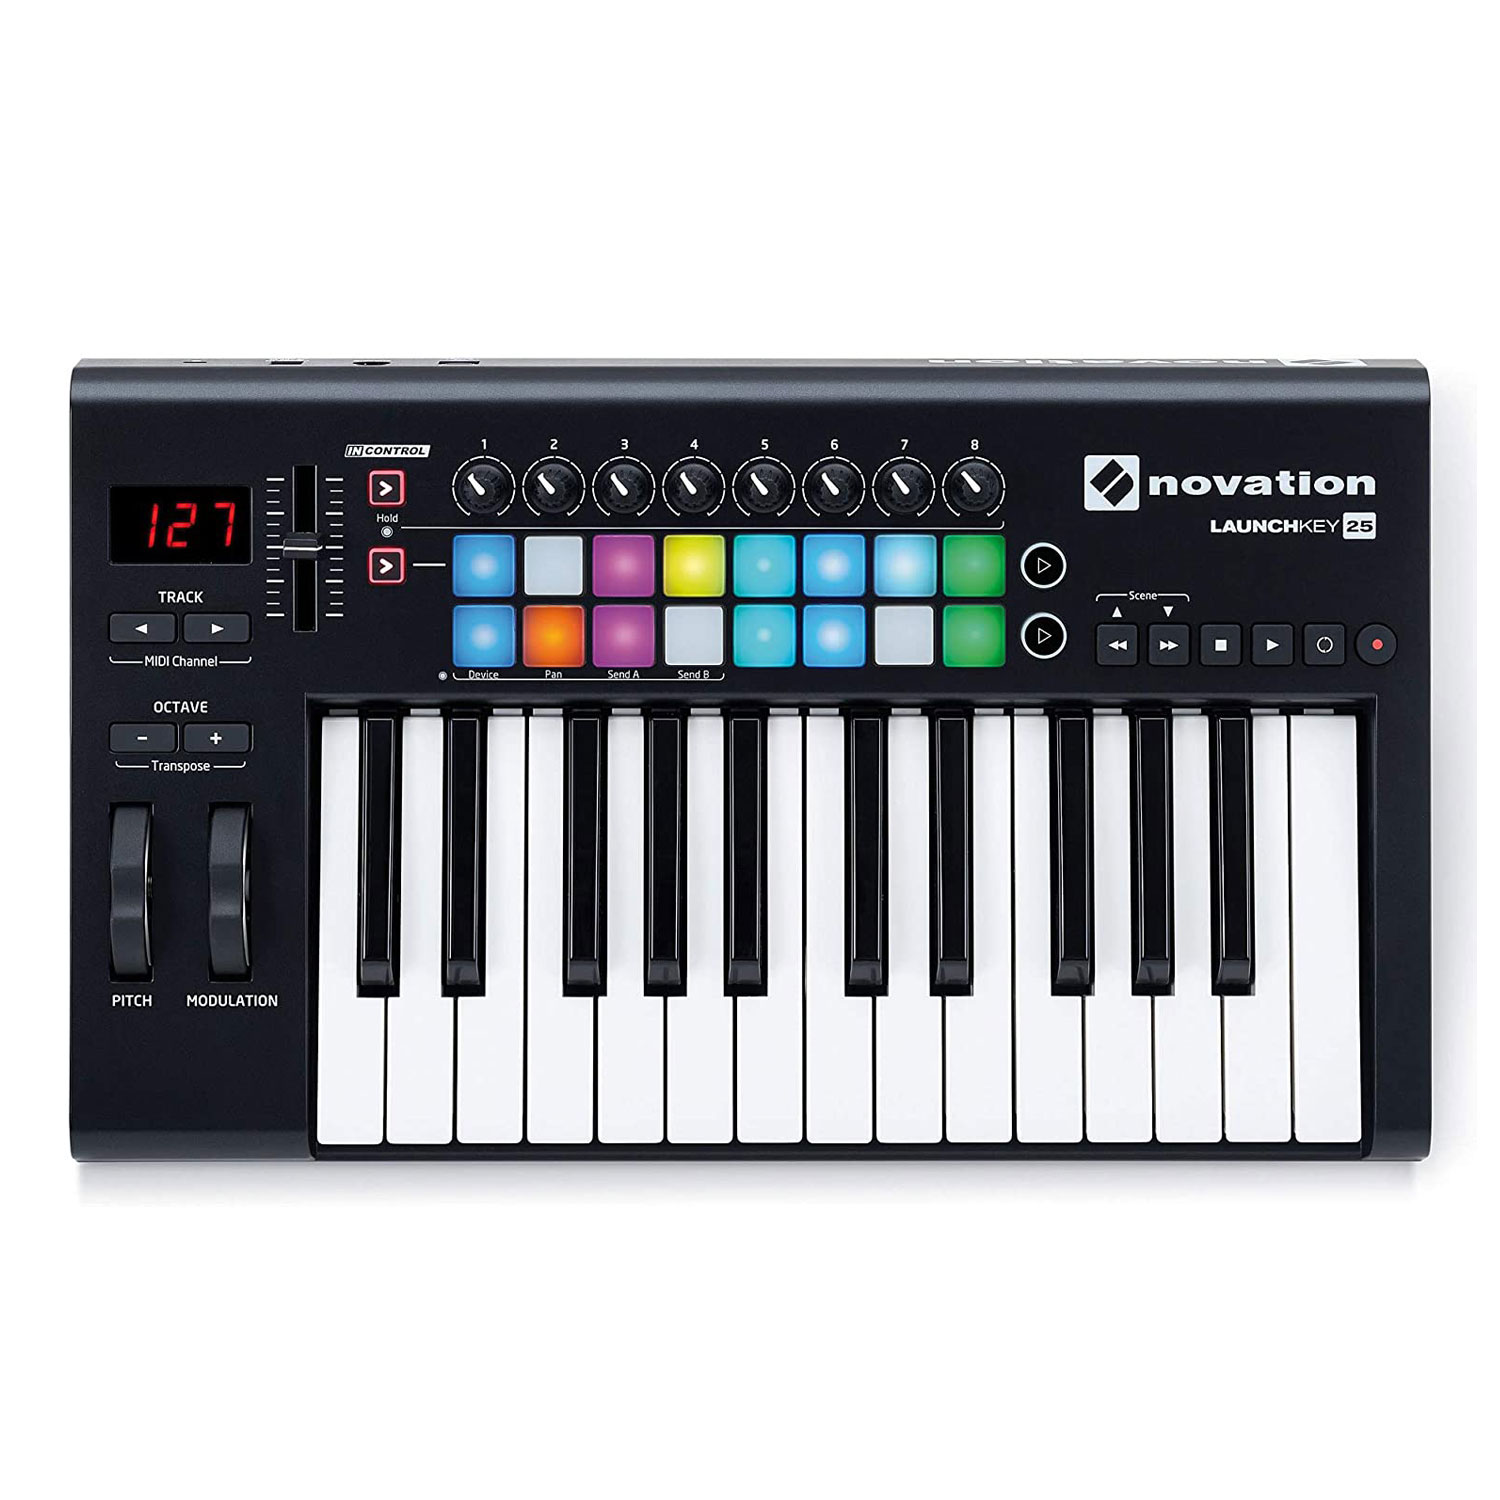 Novation Launchkey 25 Keyboard Controller Version MK2